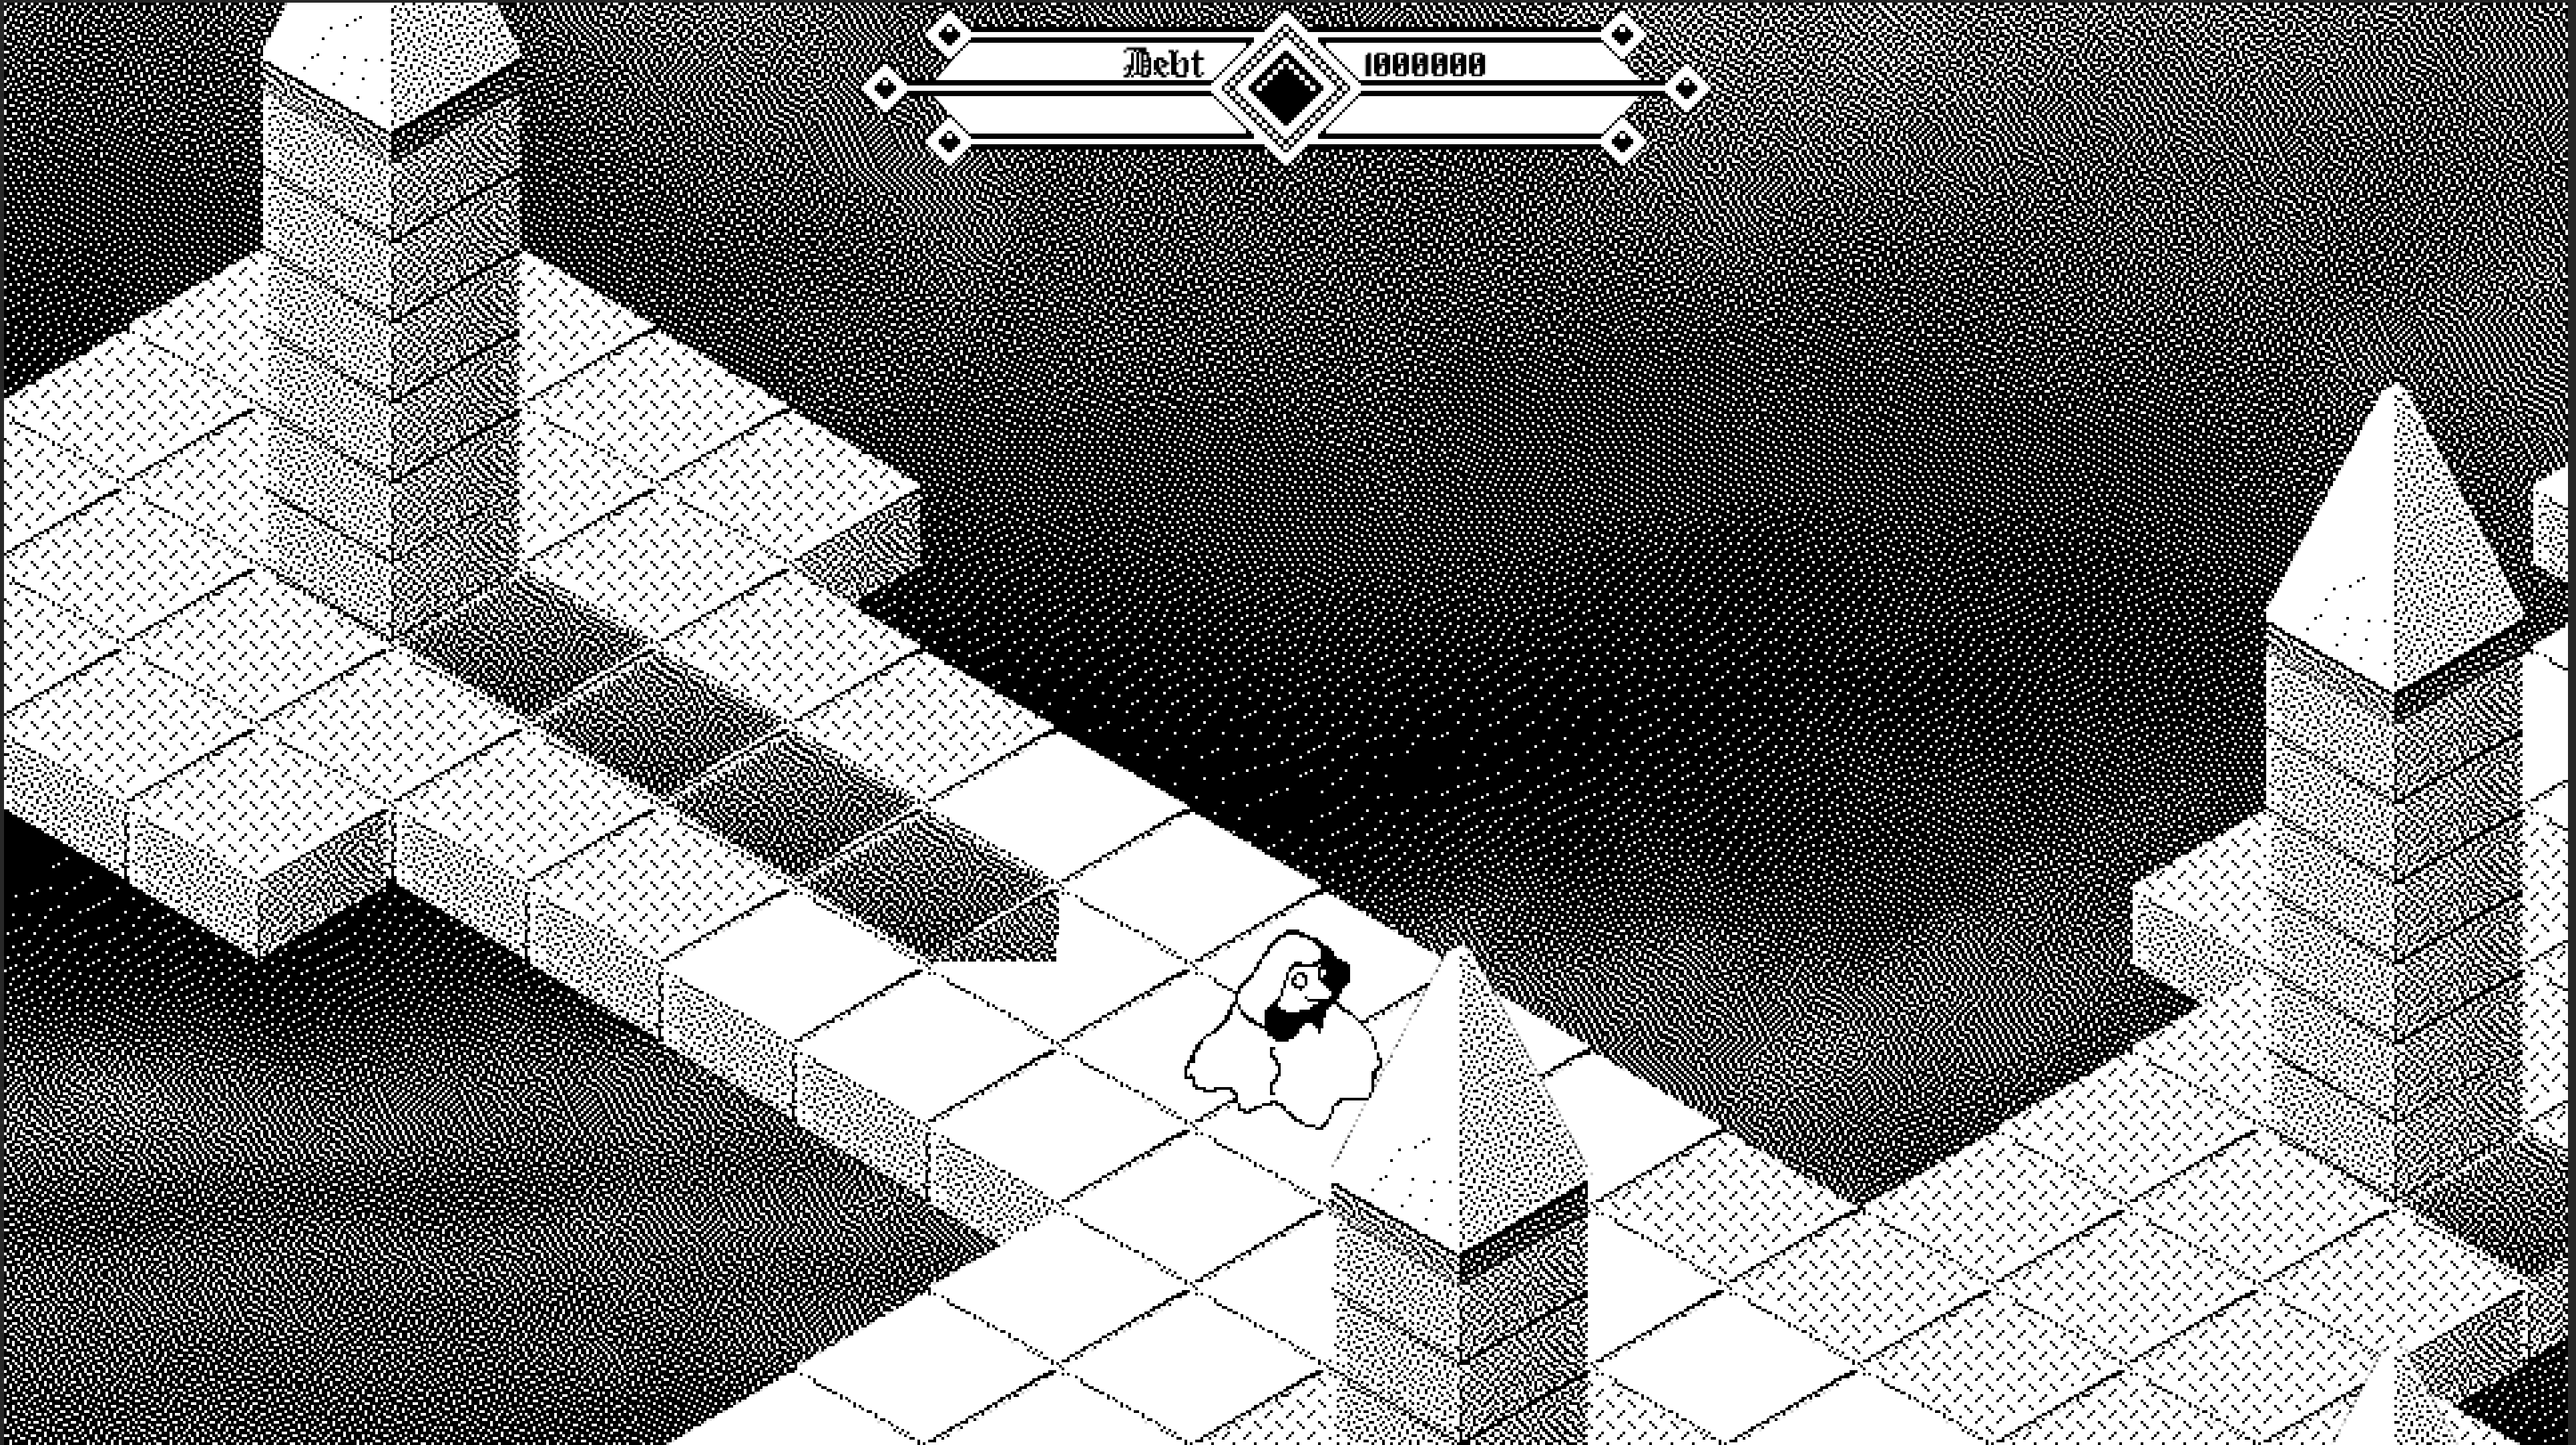 screenshot of obelisk game with patterns drawn on ground tiles